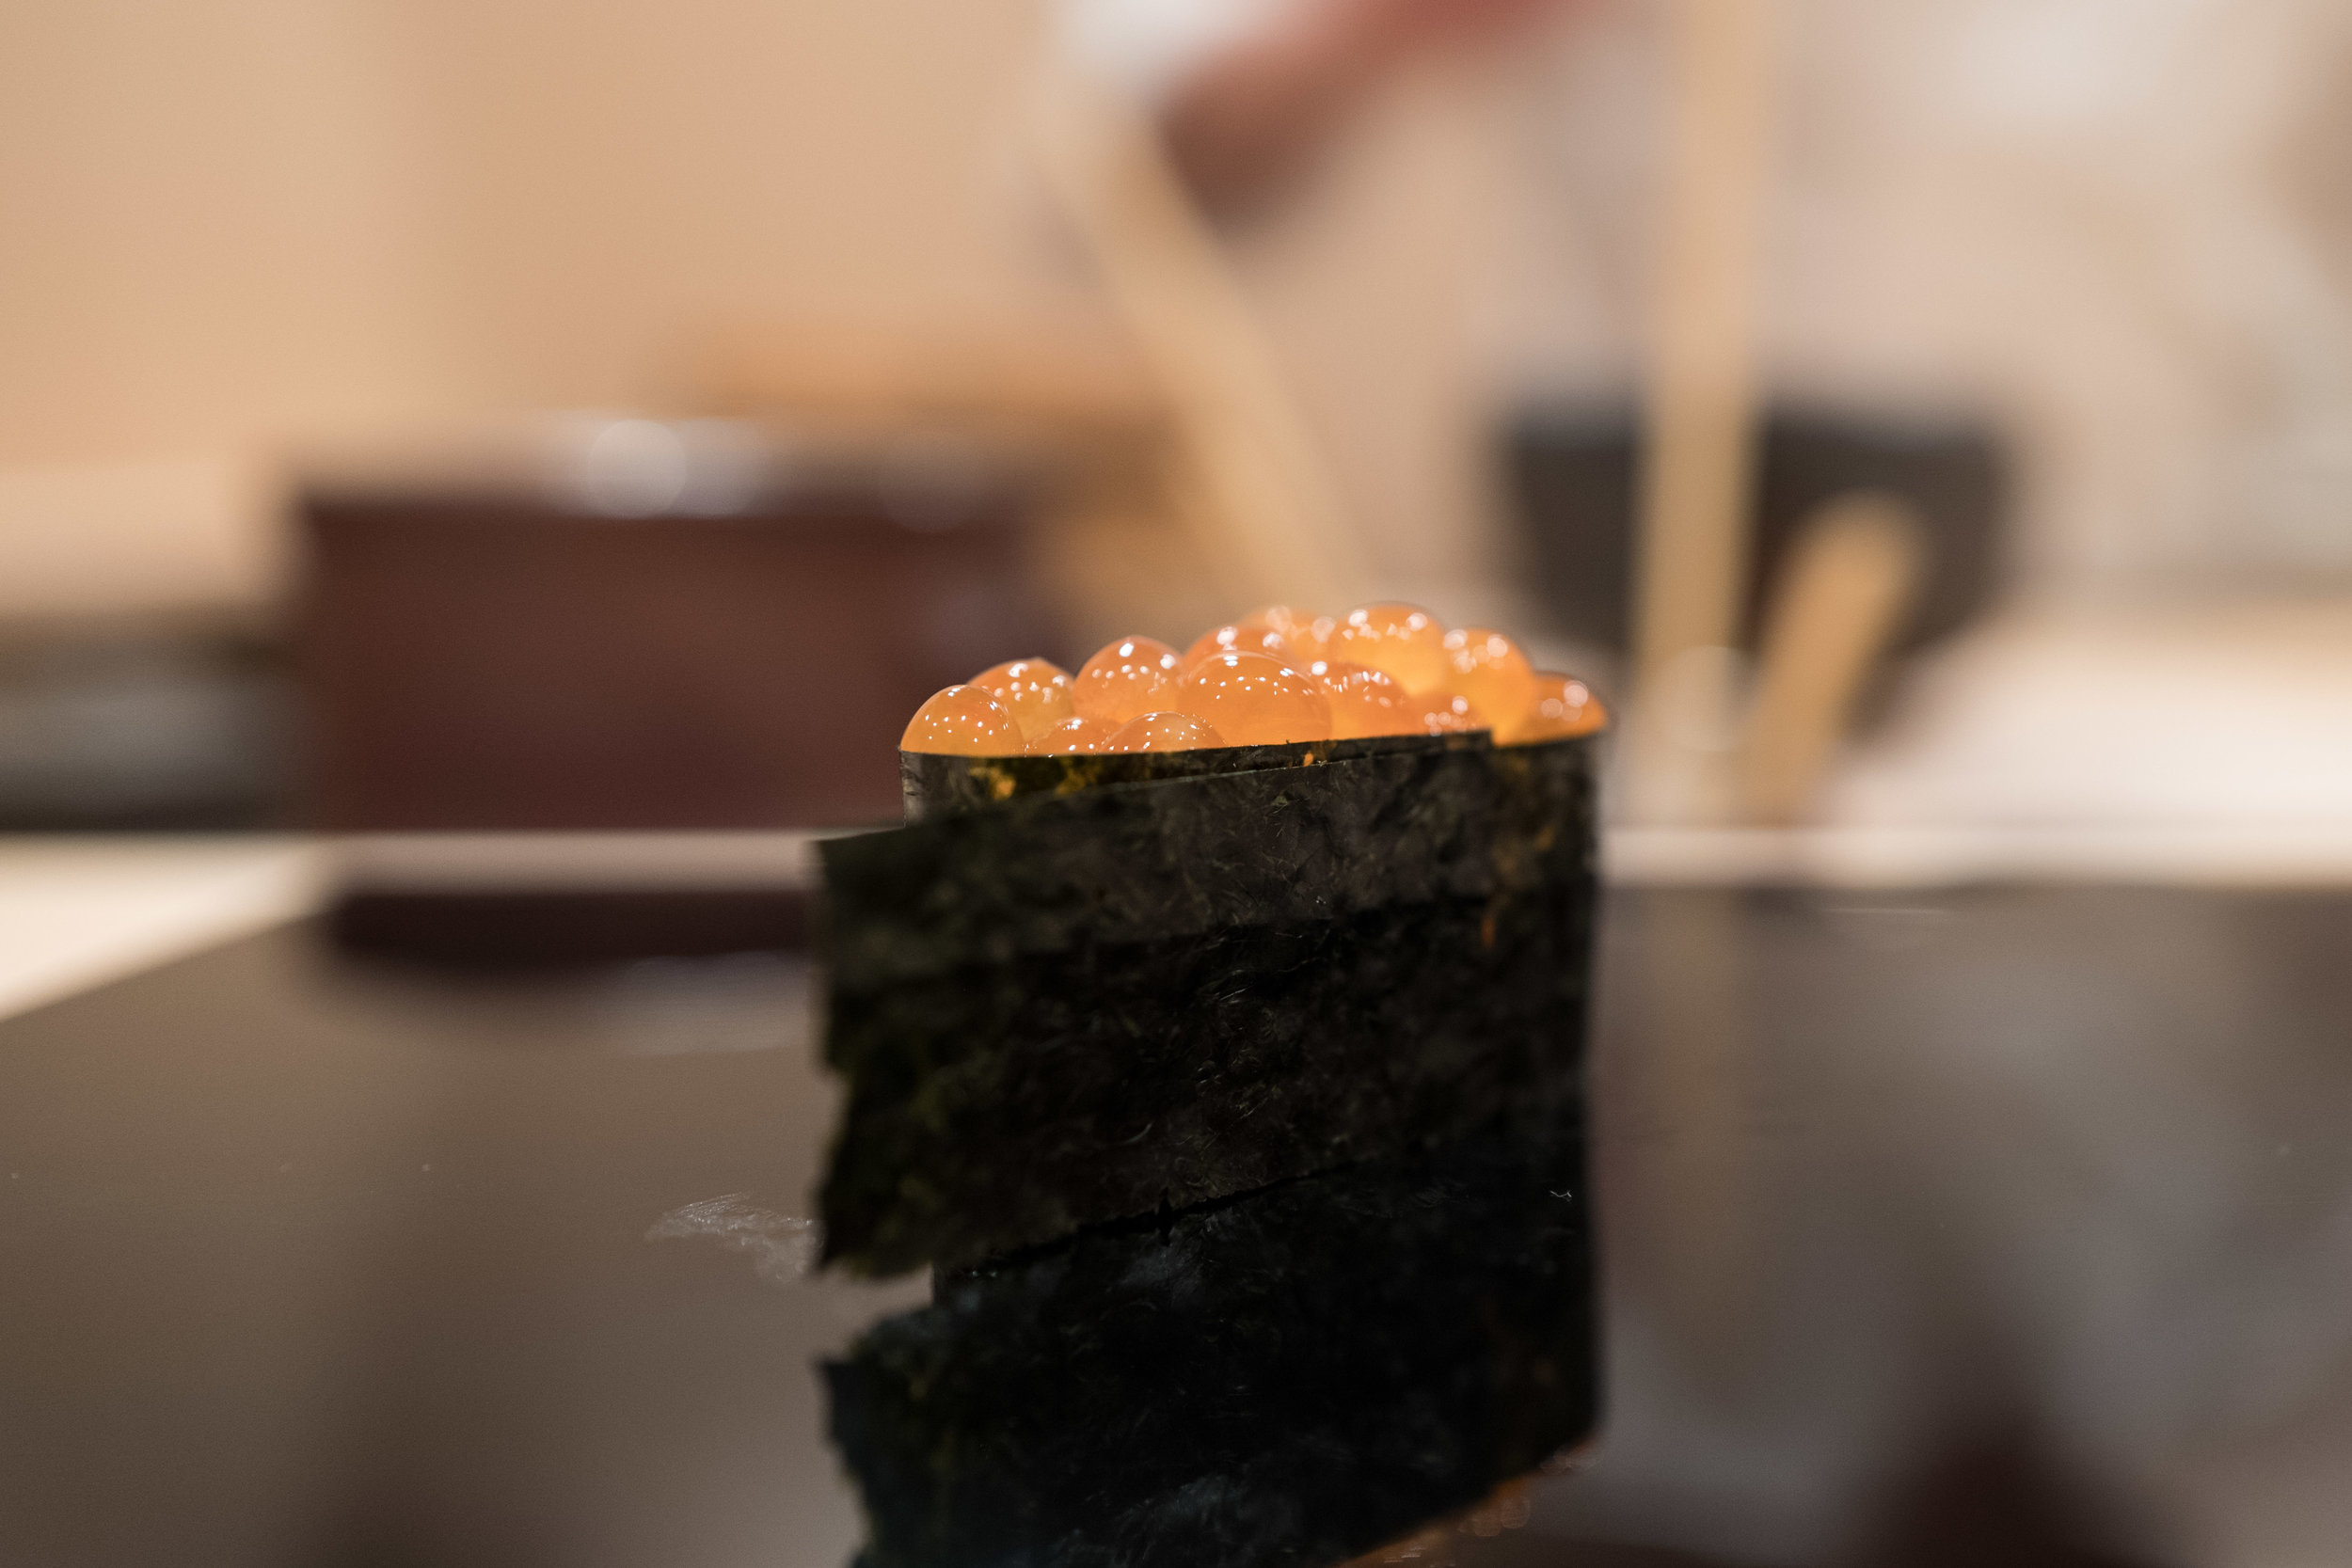 great ikura - balanced cure and crunchy, flavorful nori